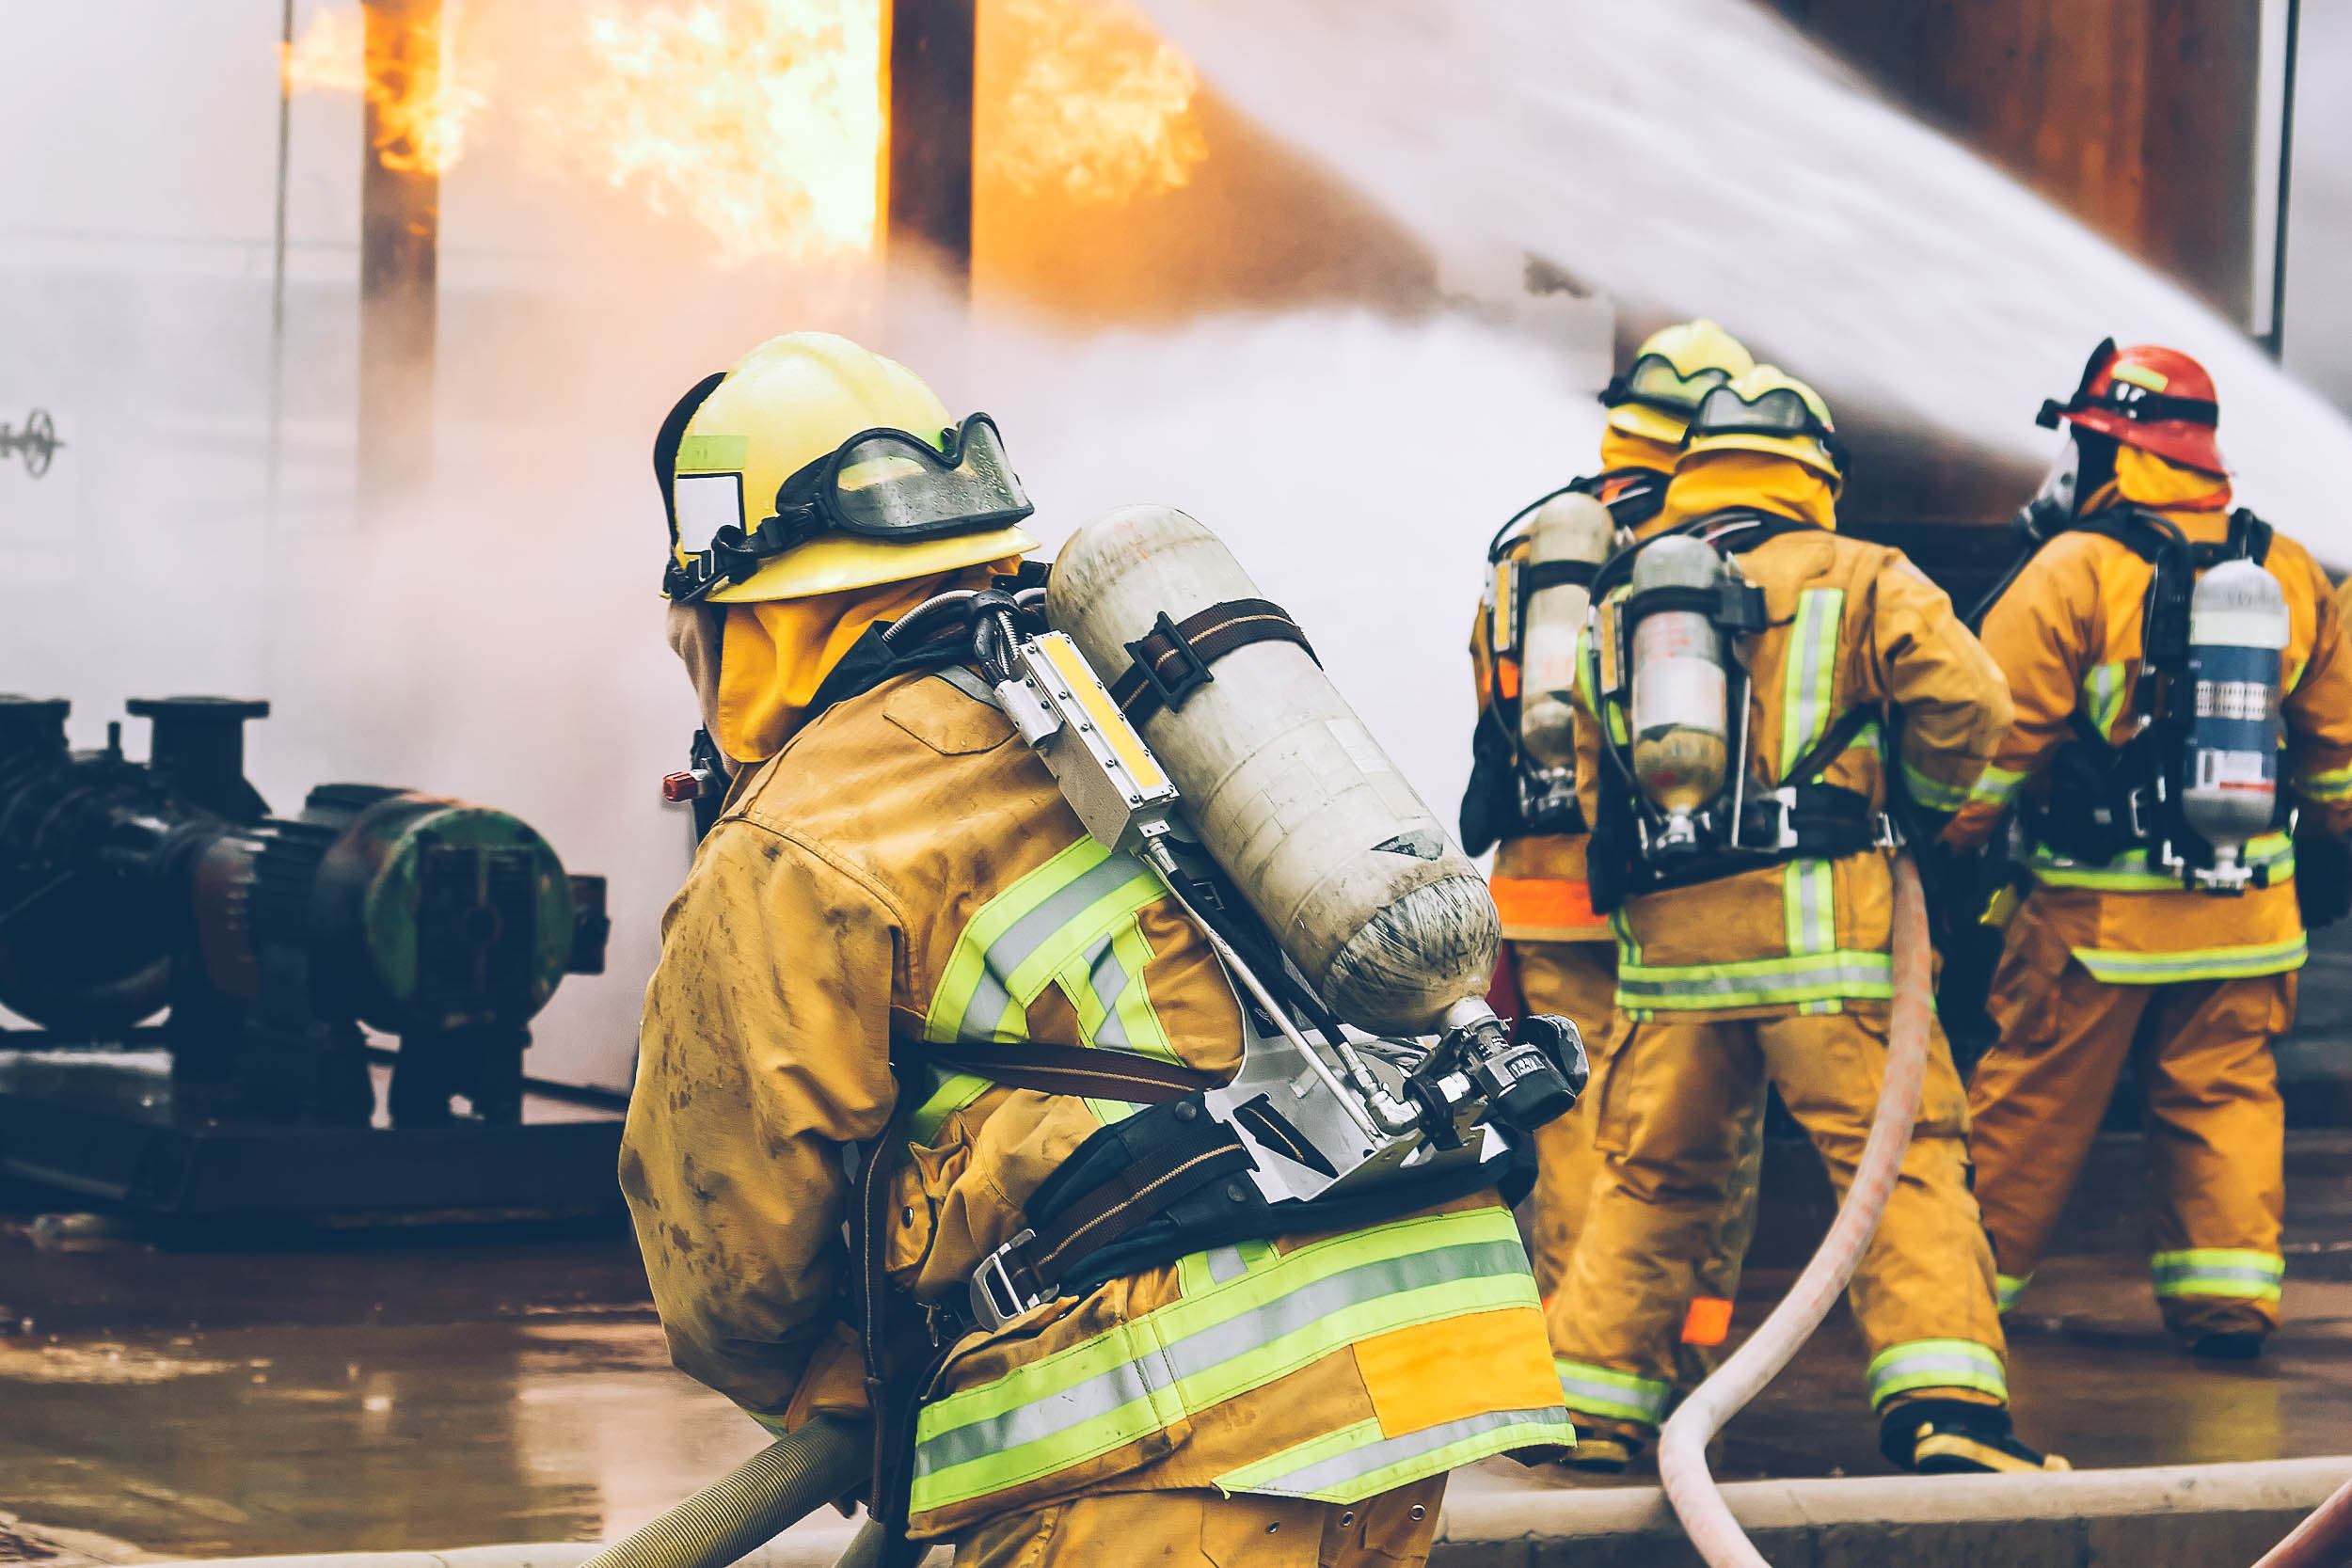 Empower crews to self book. - Give incoming training crews a portal to book their own rooms during training. Crew can also book travel tied to their room reservation.